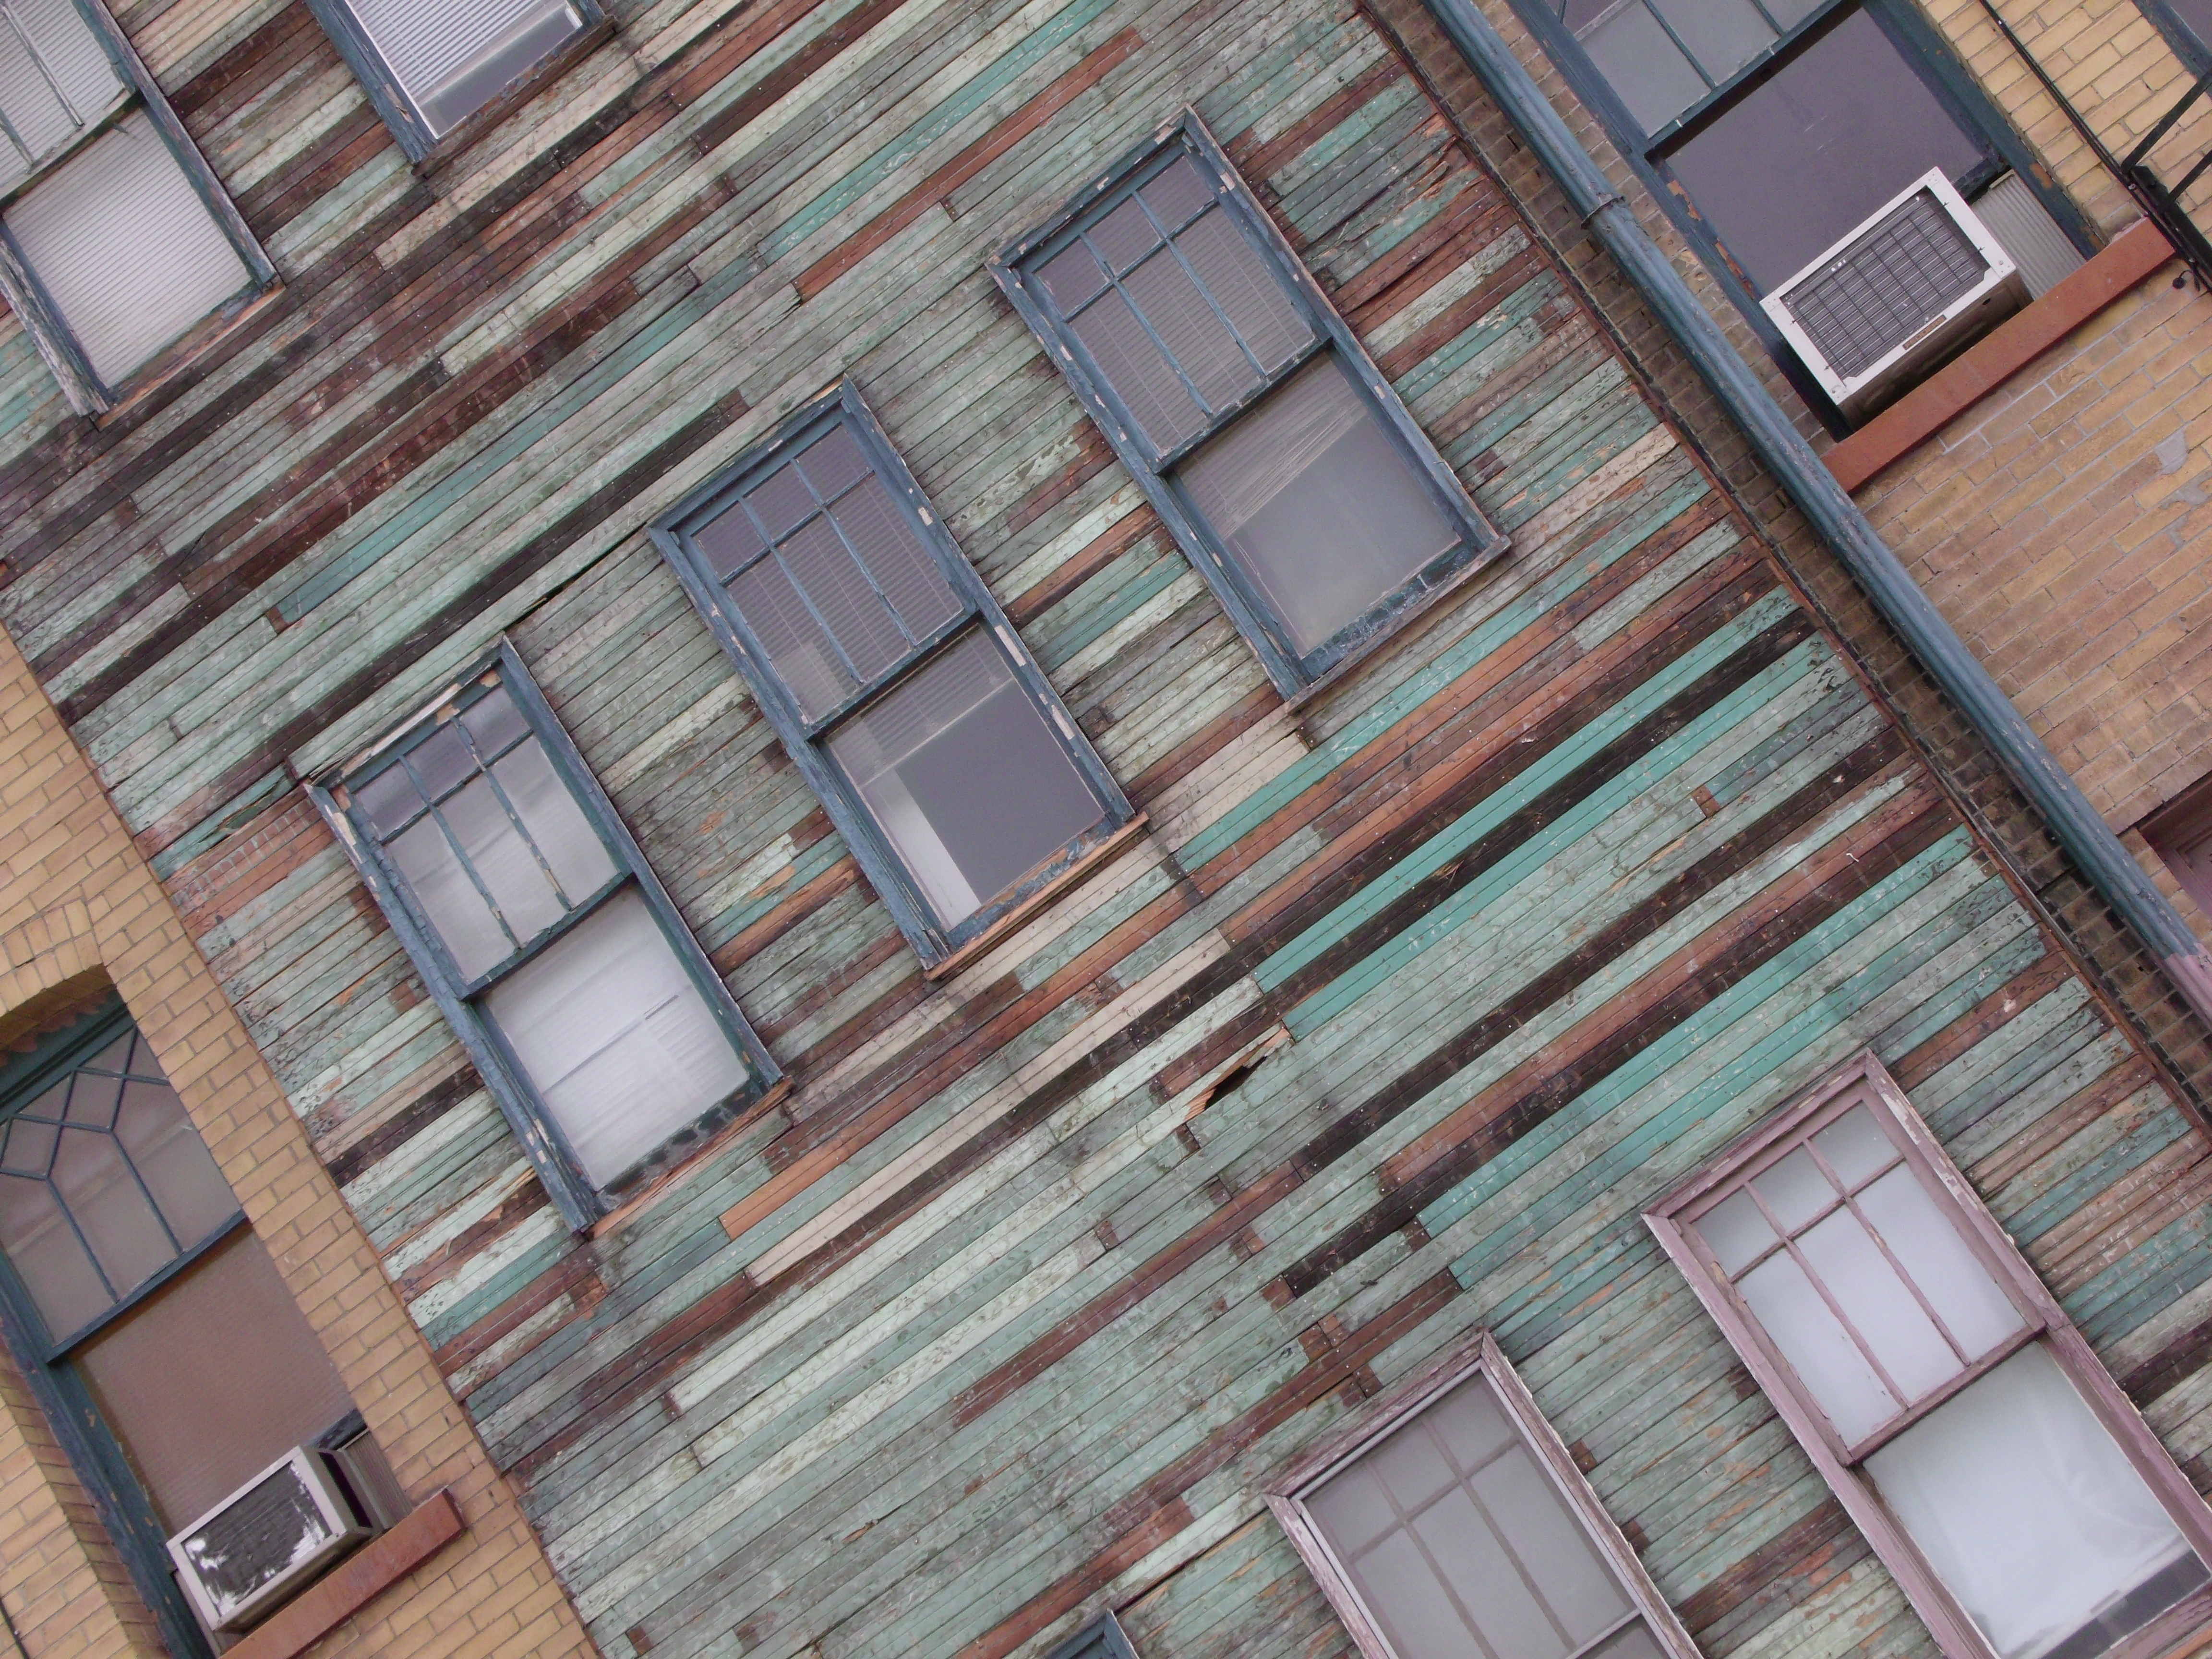 Windows and Wood #7E604D